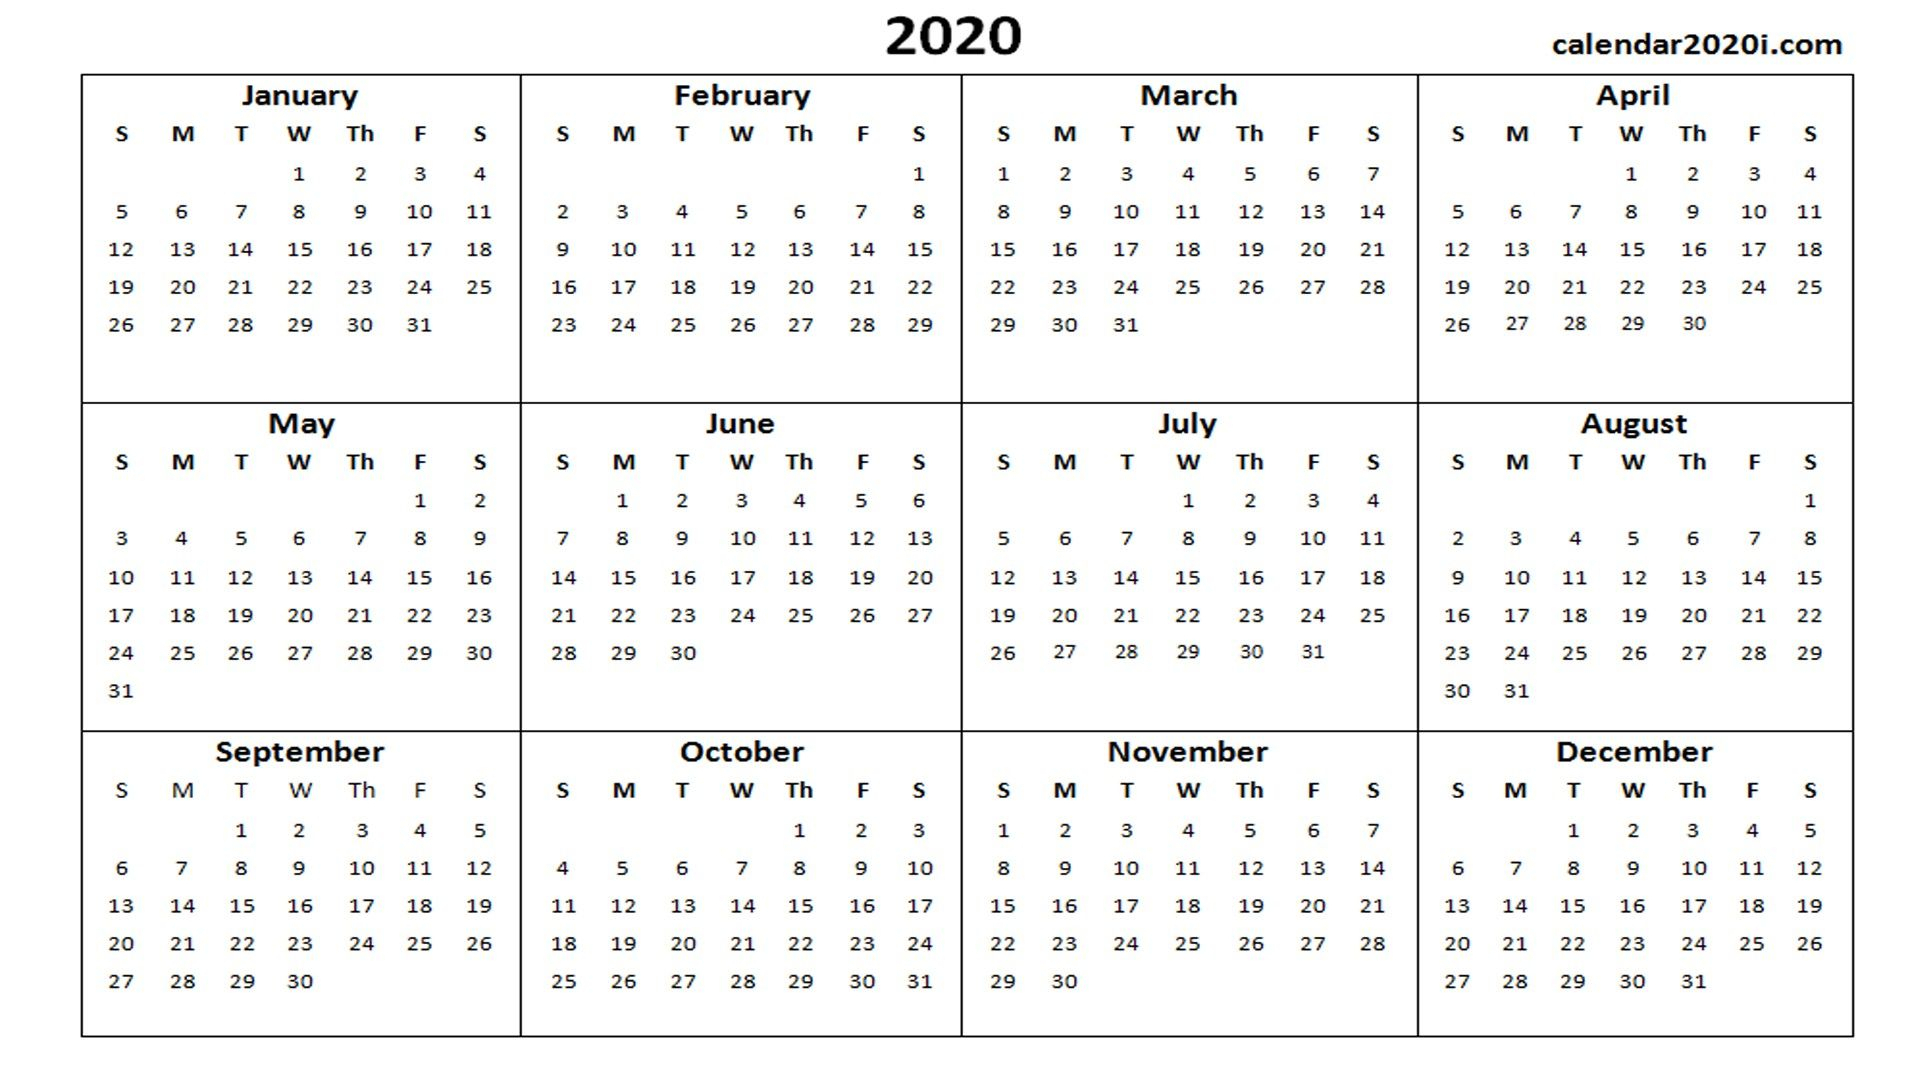 Printable Calendars For 2020 – Pleasant For You To Our with regard to Wincalendar April 2020